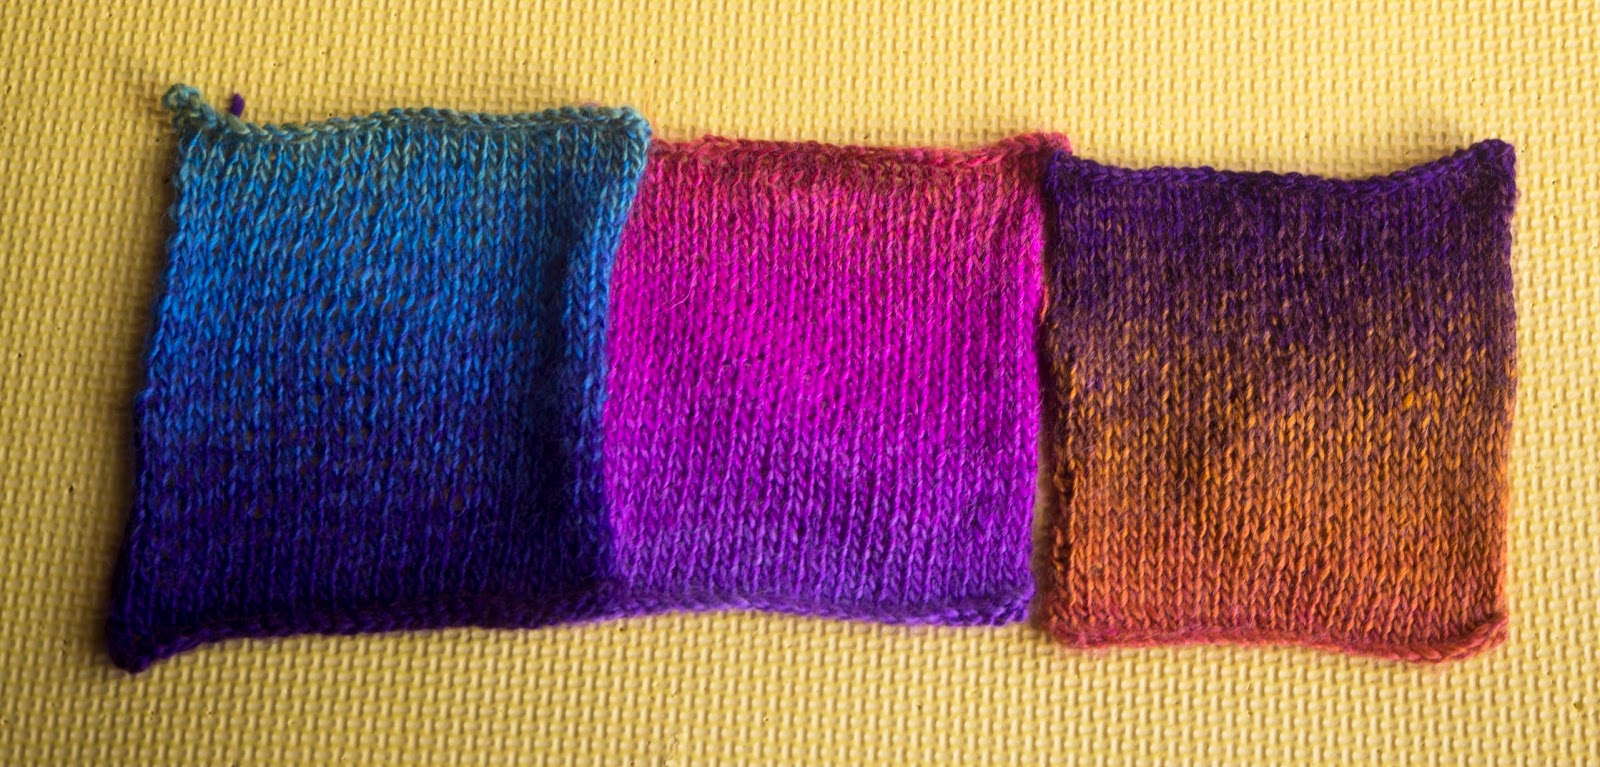 Knit Pro: Tension squares - The key to successful knitting projects